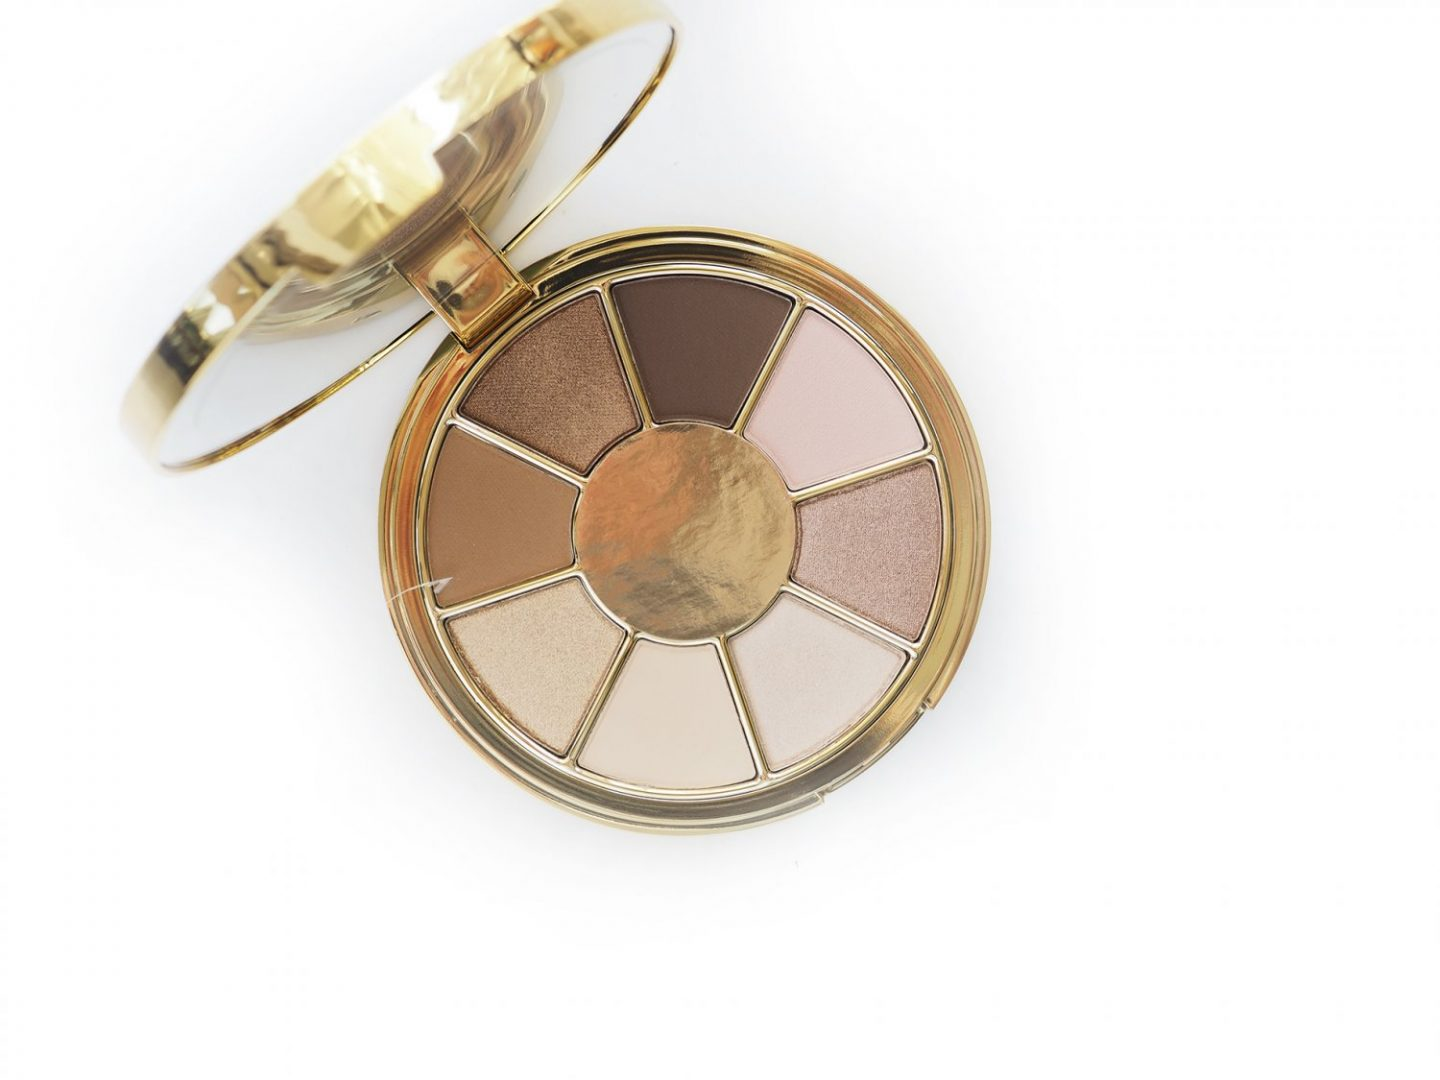 Tarte Be You Naturally Eyeshadow Palette